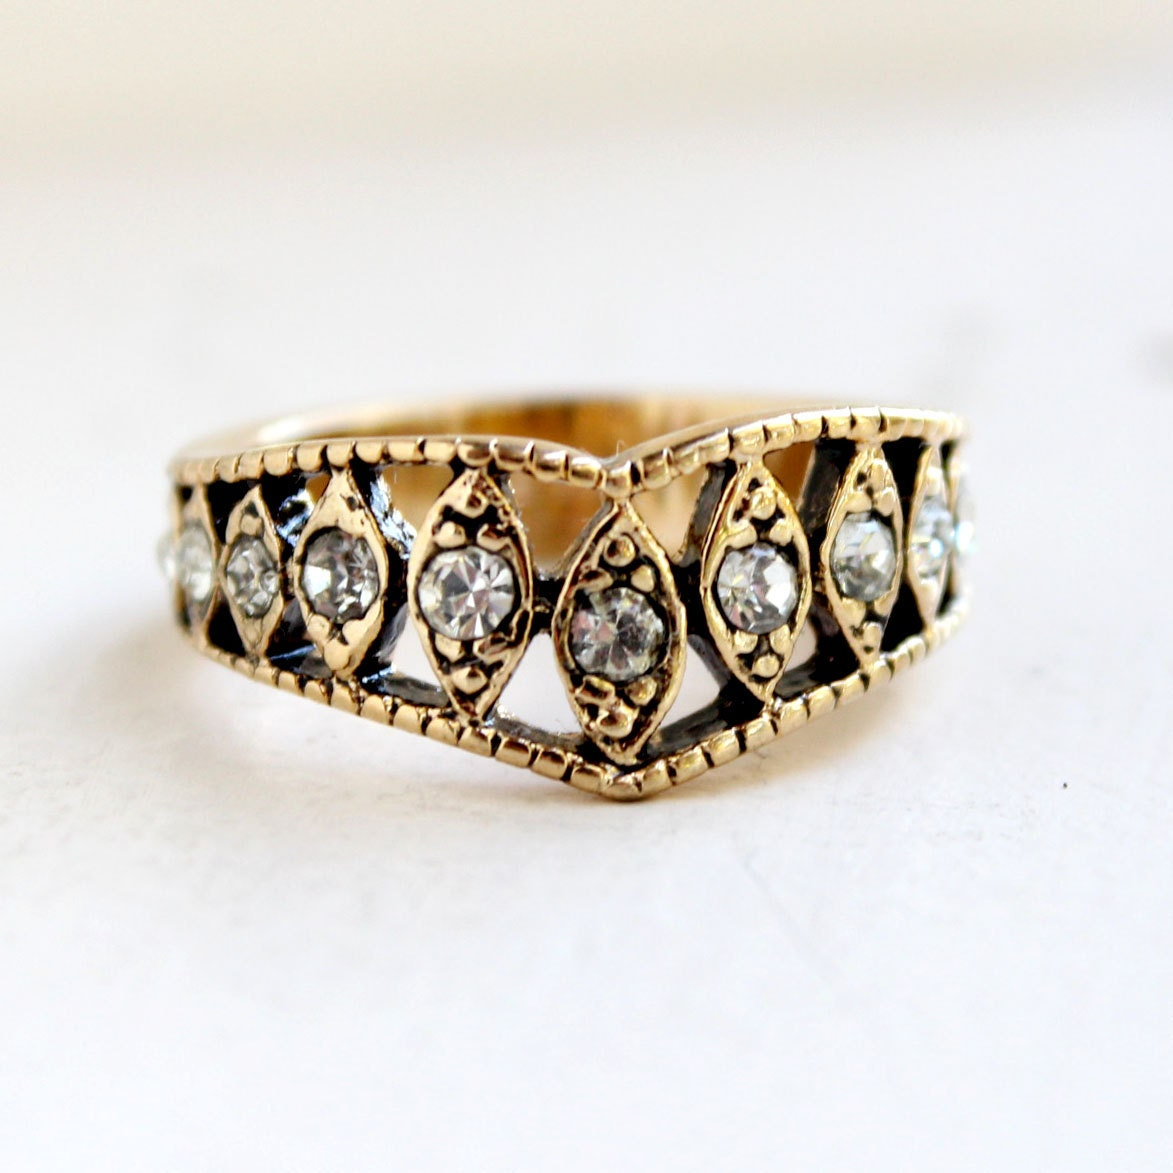 vintage edwardian ring antique gold tone with clear austrian